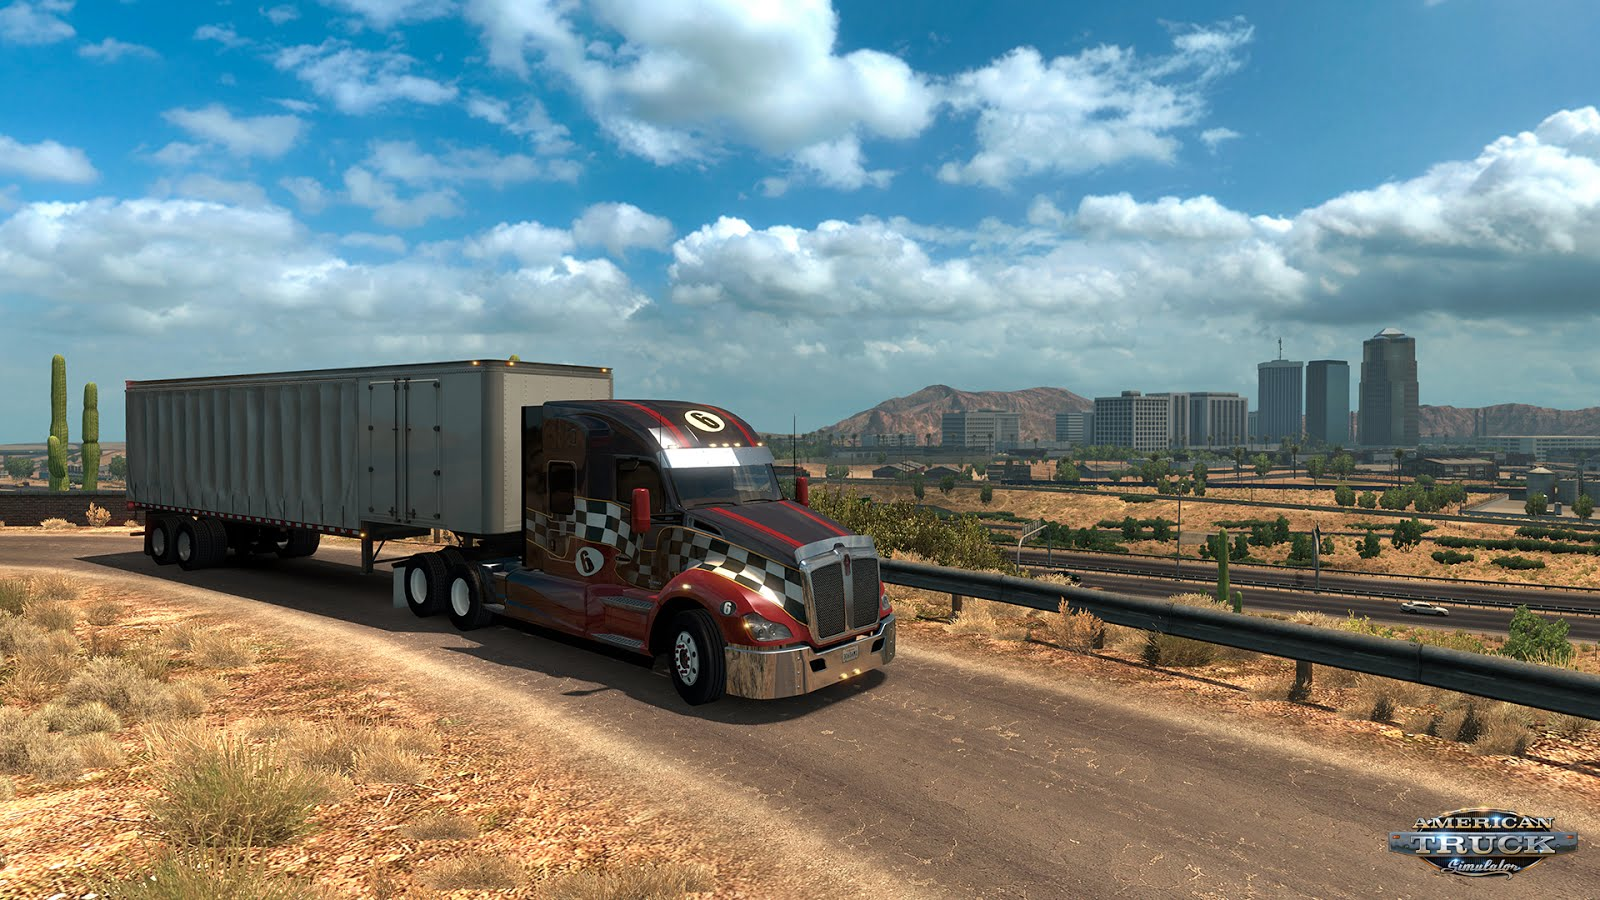 Arizona map dlc expansion for american truck simulator released arizona map dlc expansion arizona map dlc expansion gumiabroncs Image collections